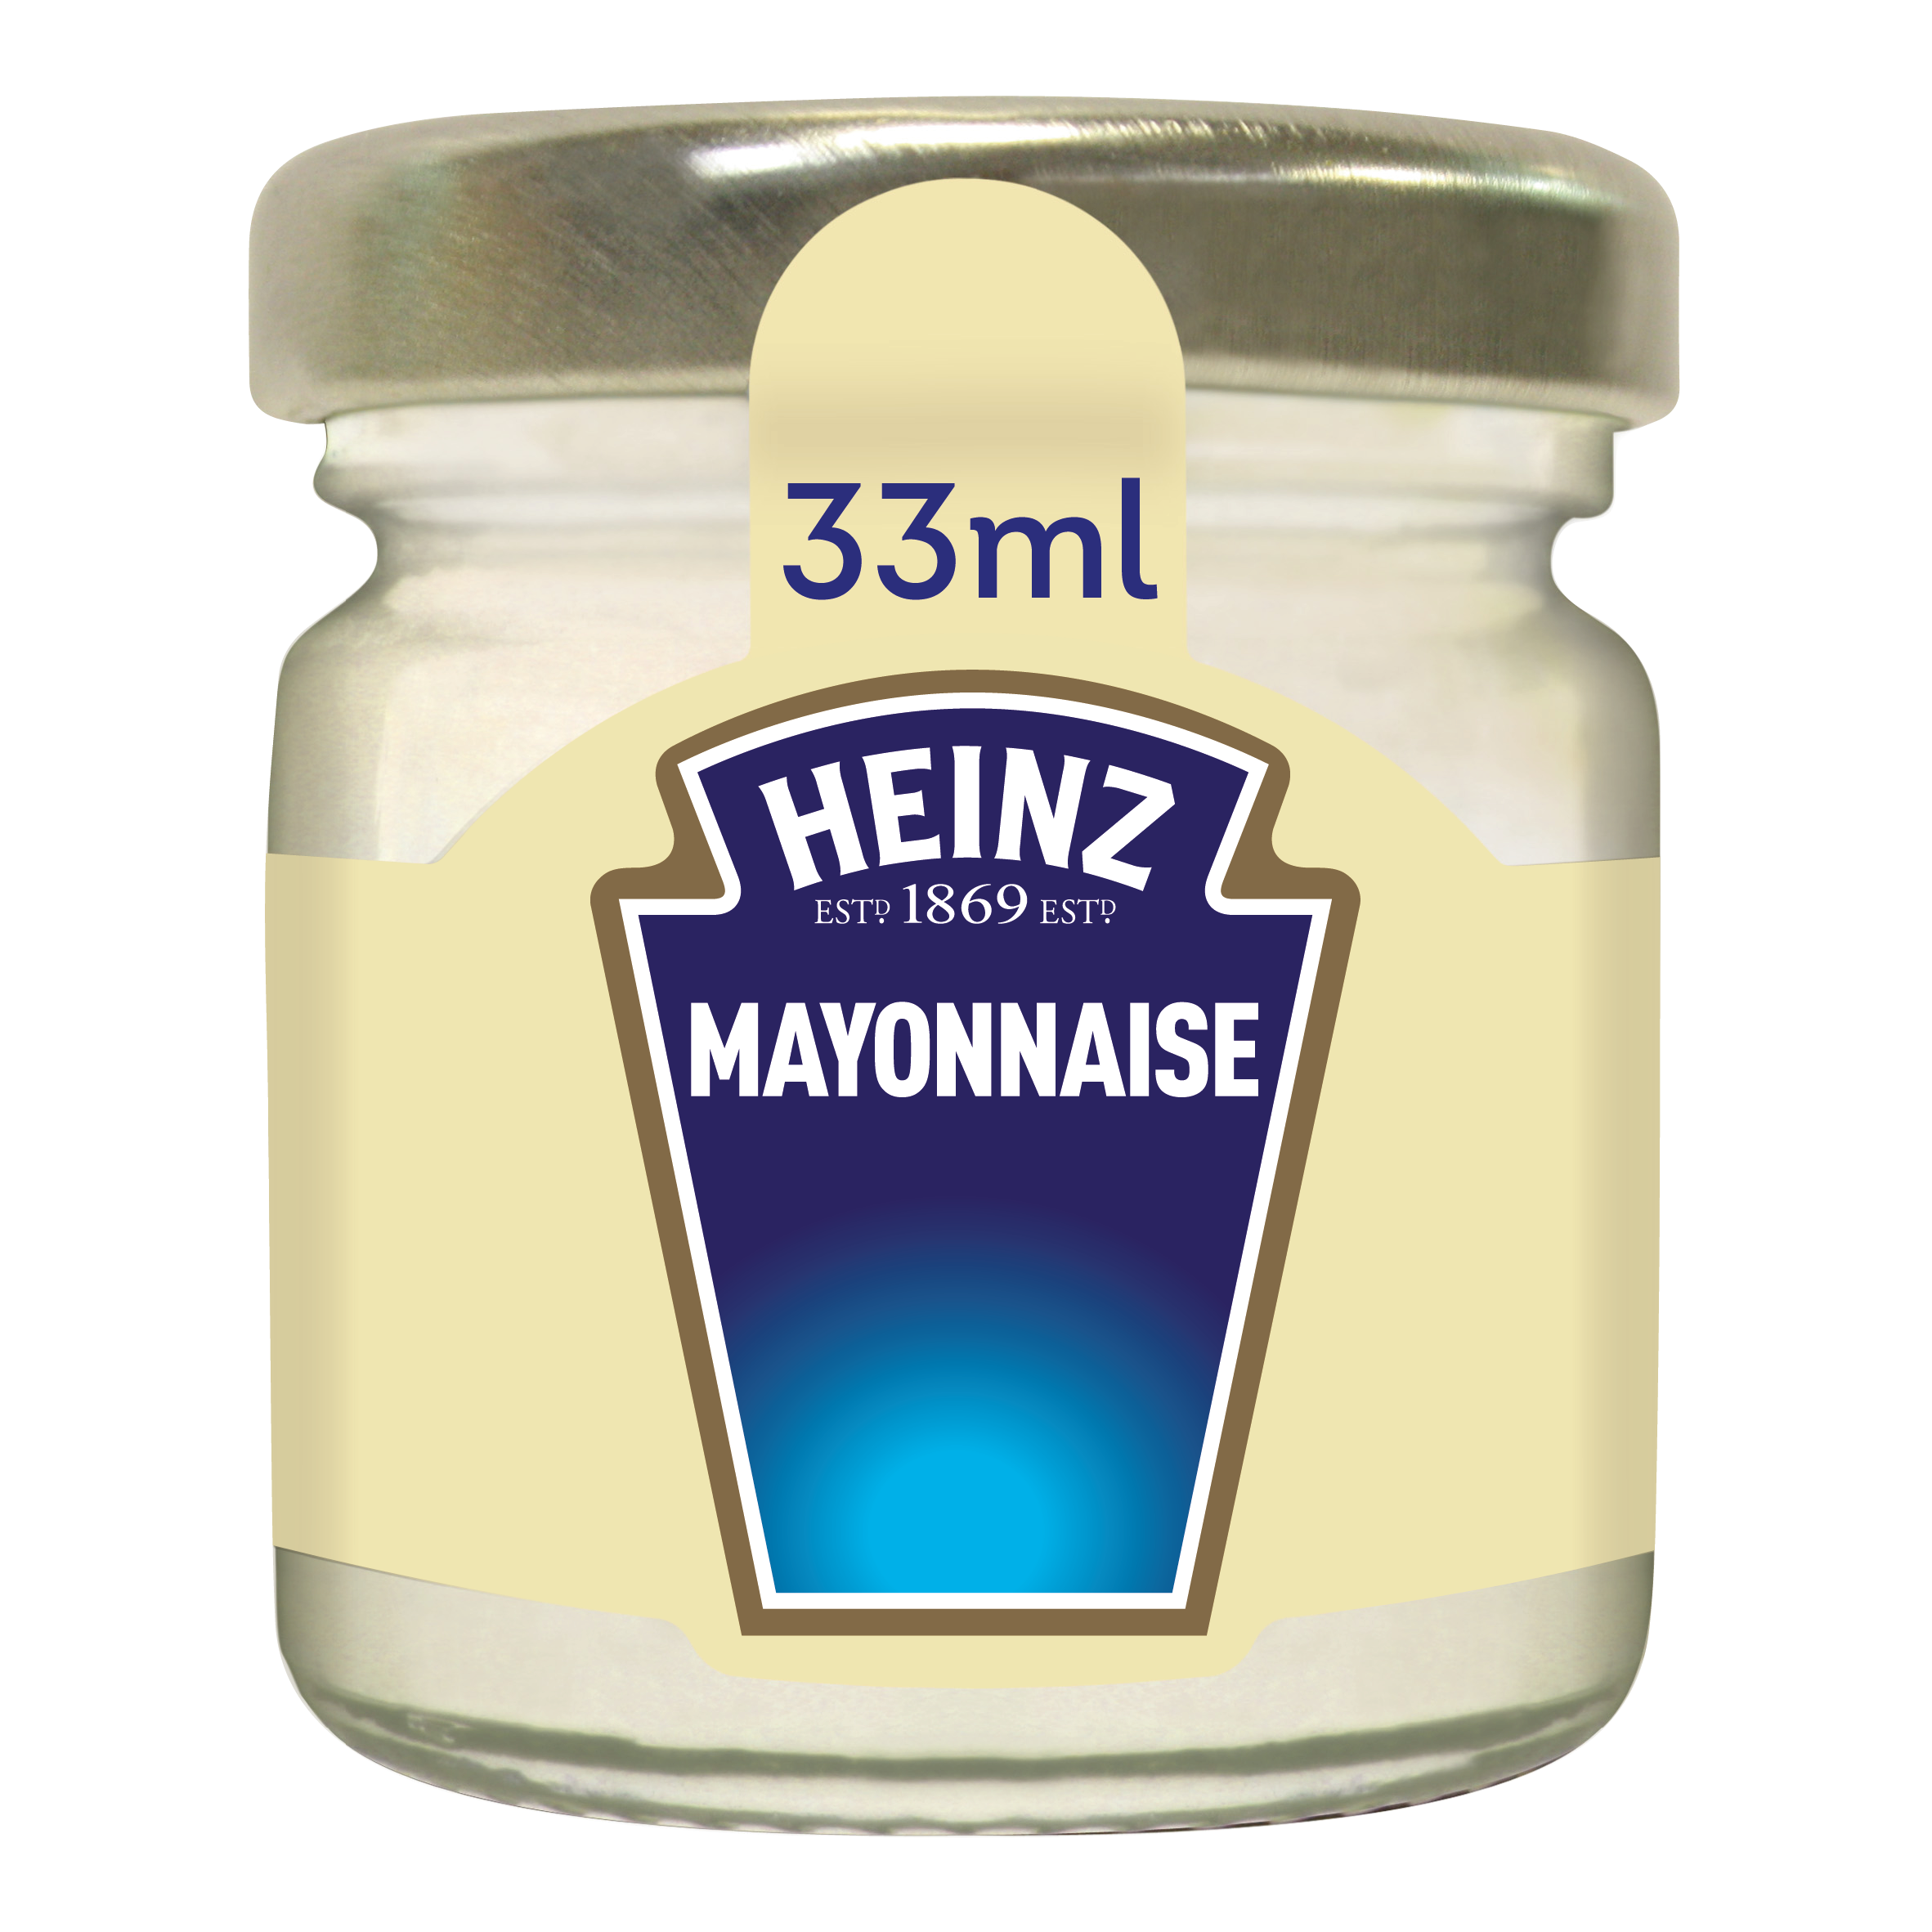 Heinz Mayonnaise Free range eggs 33ml Premium Mini Jars